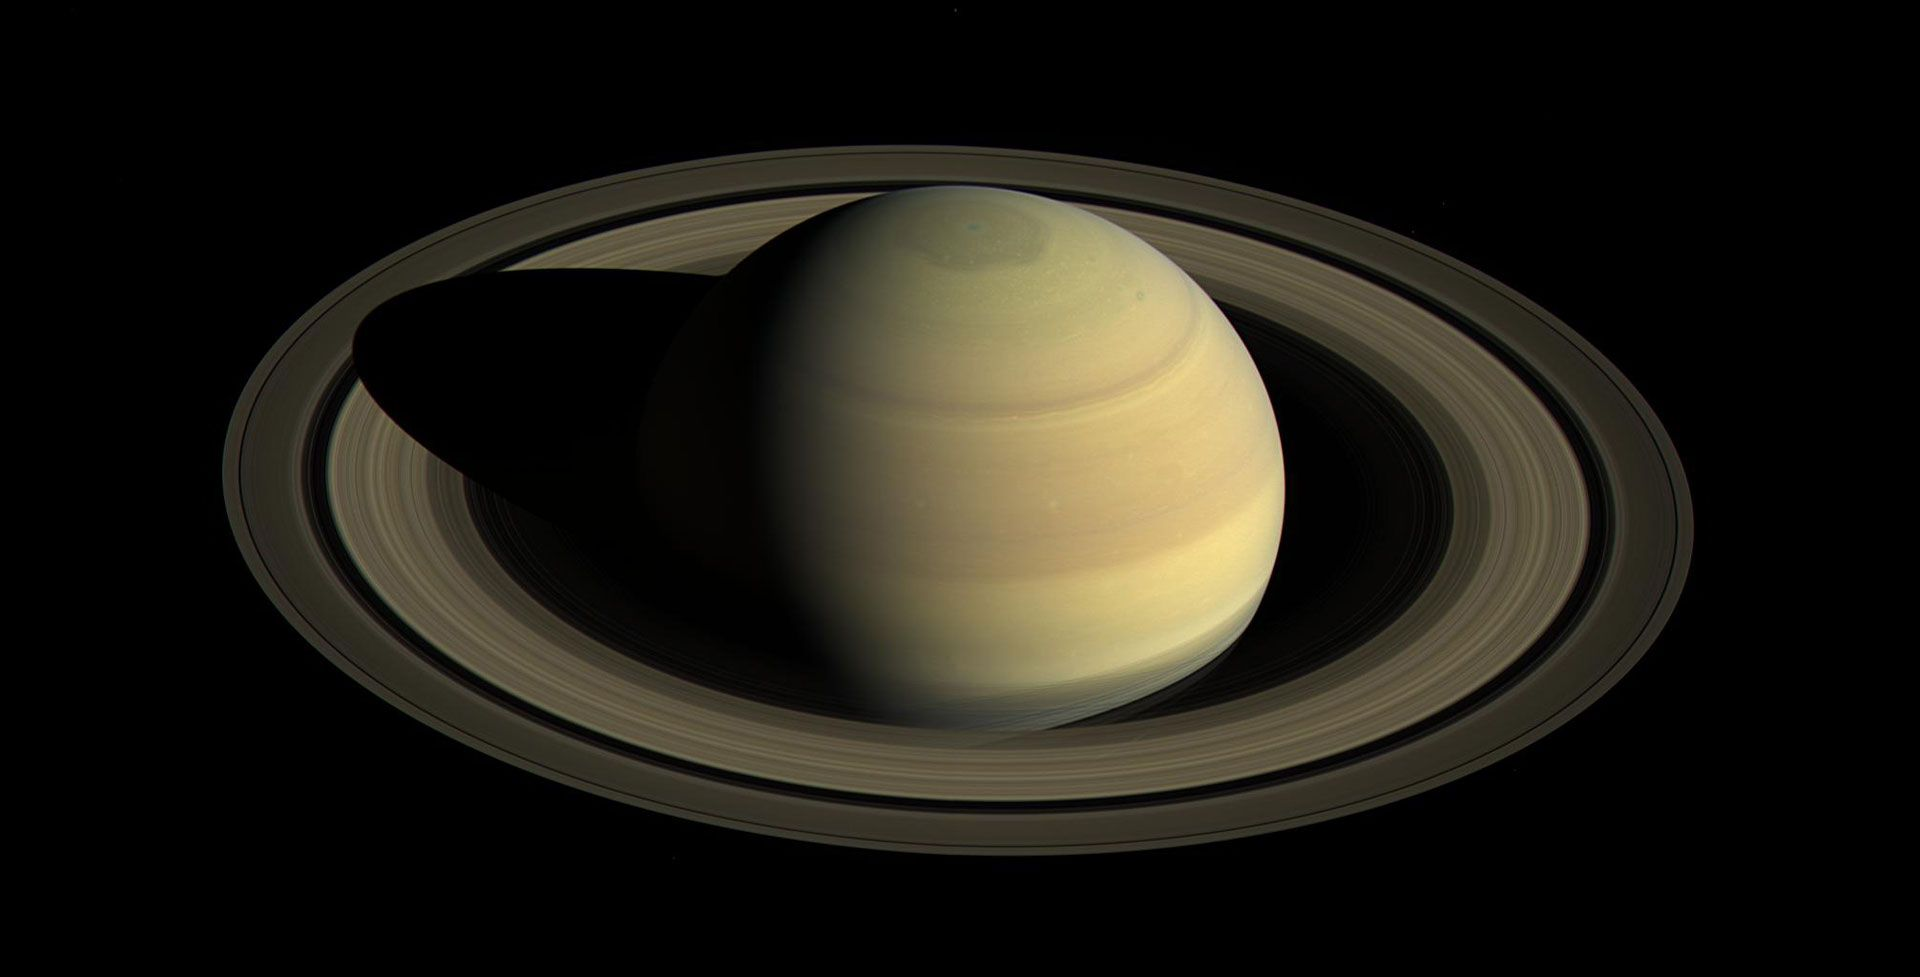 Planet Saturn Rings Above Saturn S Rings And Inner Moons The